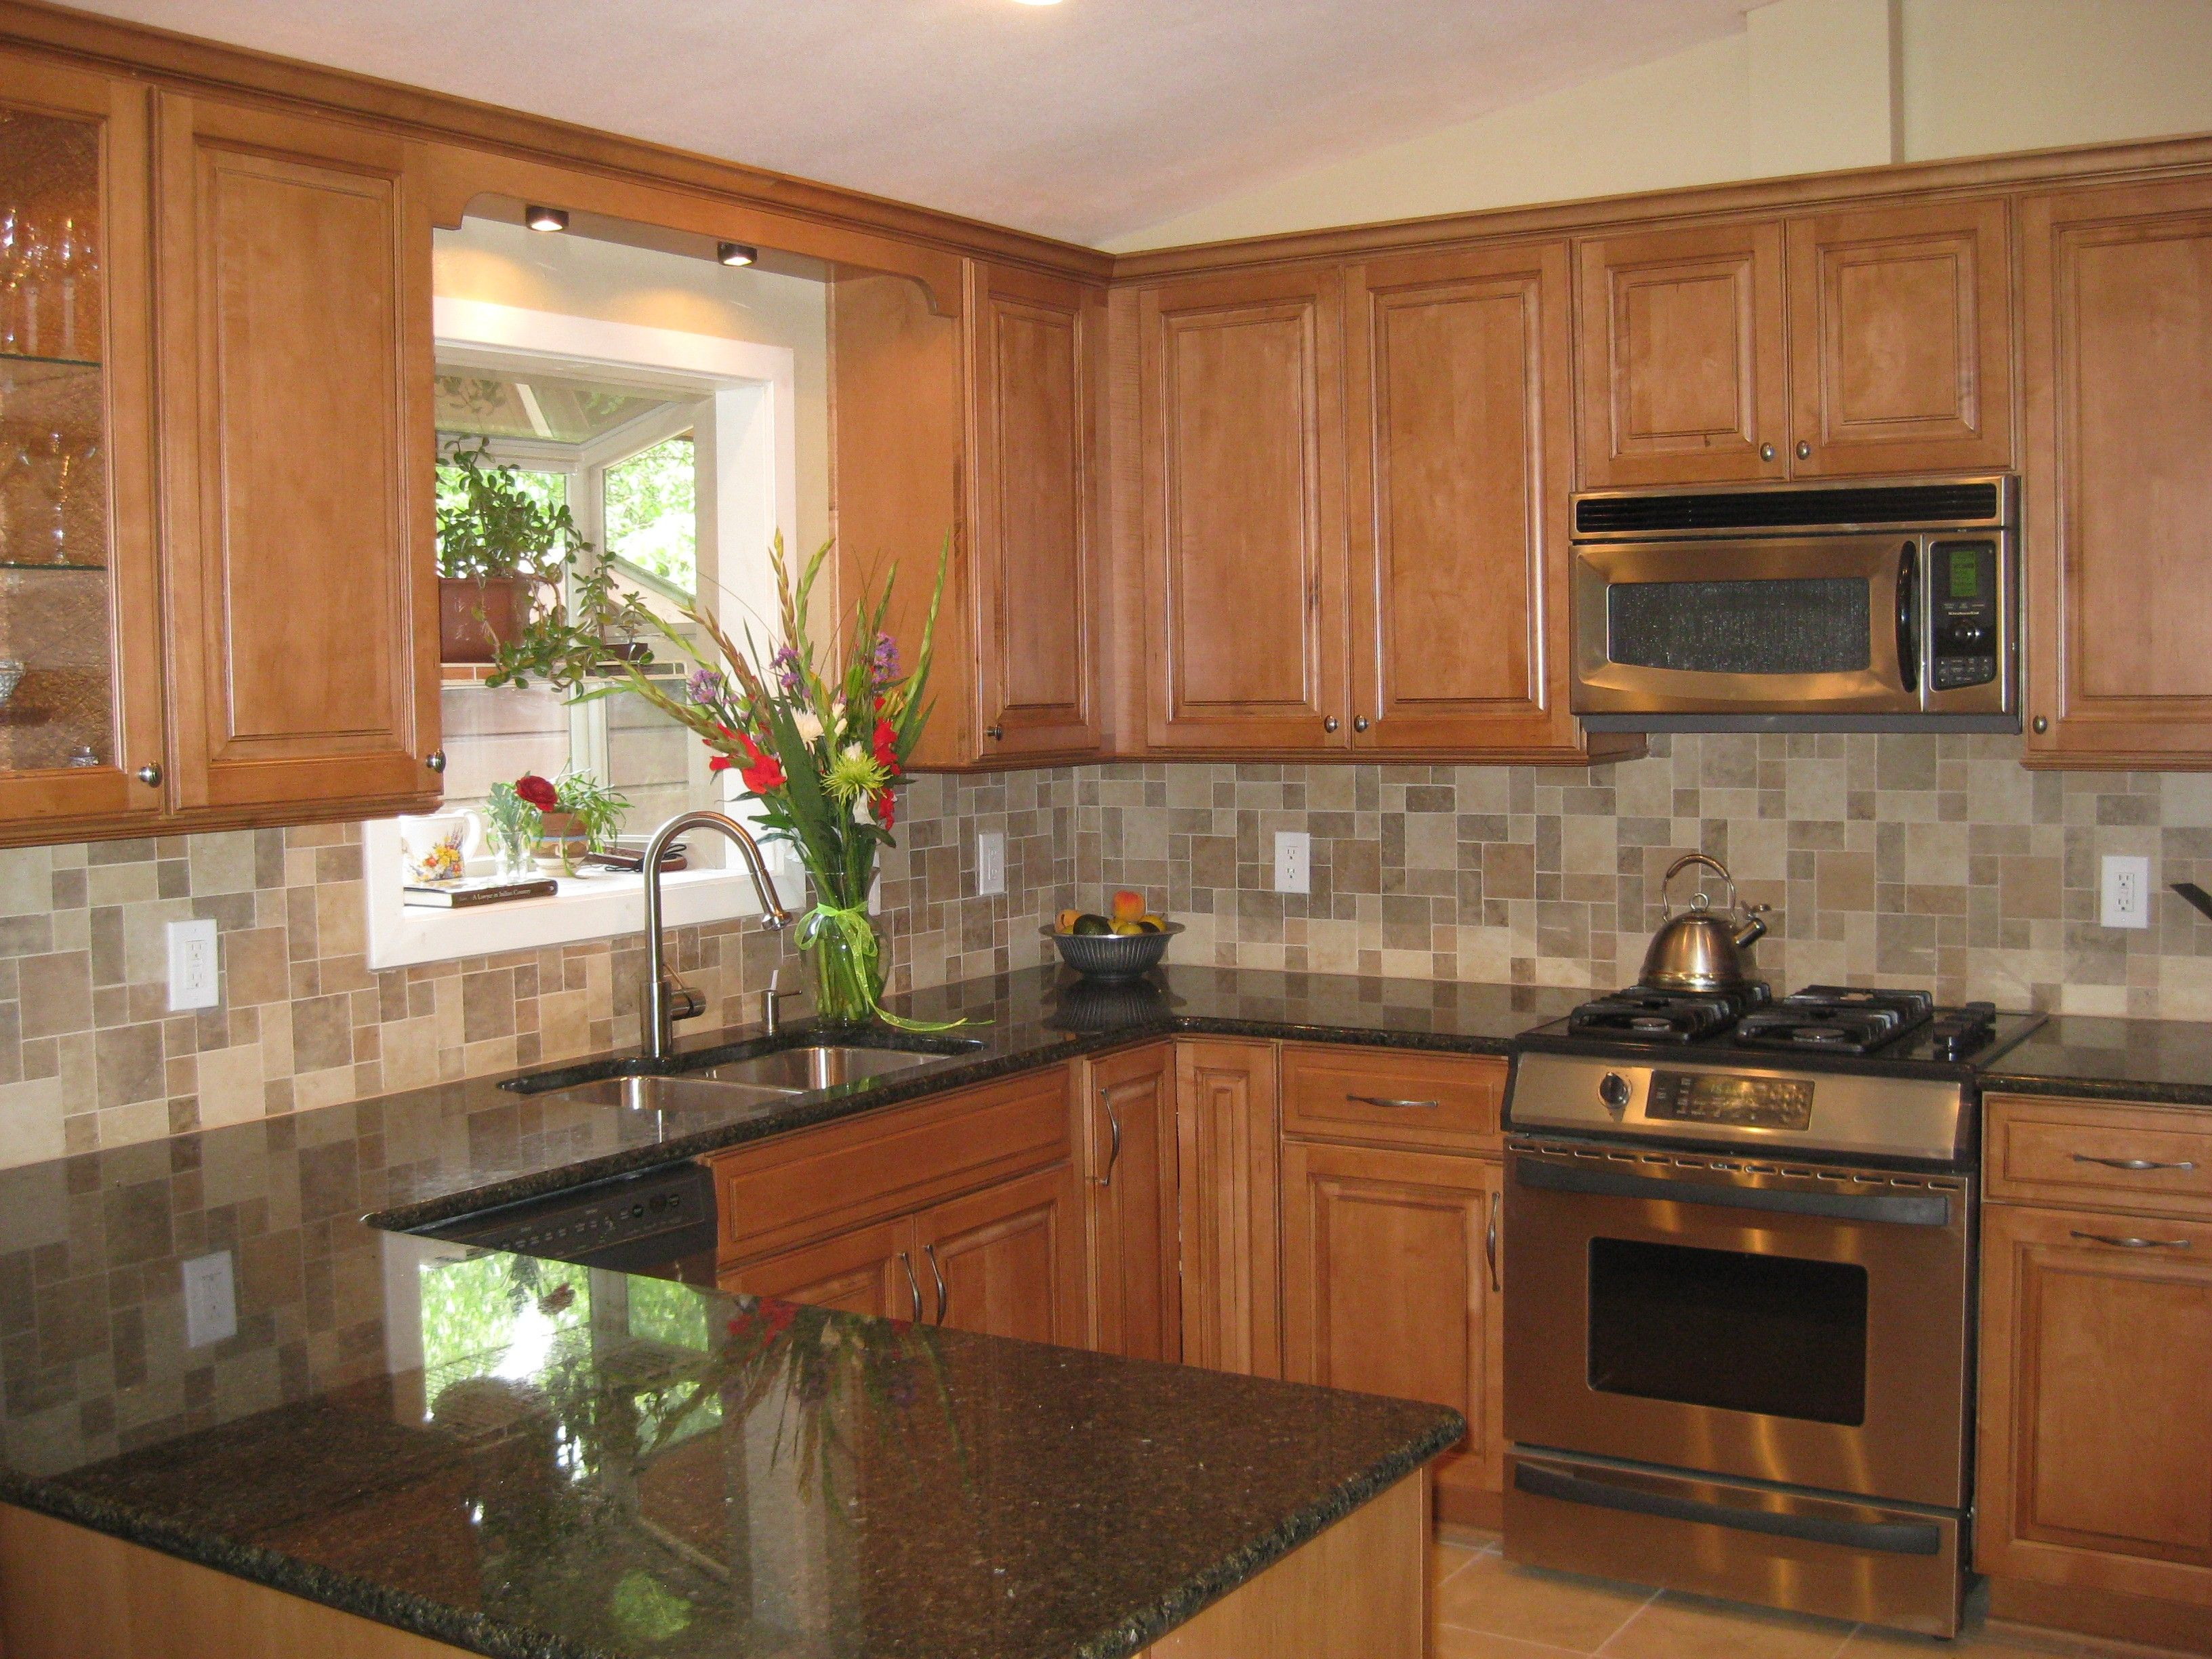 kitchen backsplash ideas maple kitchen sink white ... on Backsplash Maple Cabinets With Black Countertops  id=90502